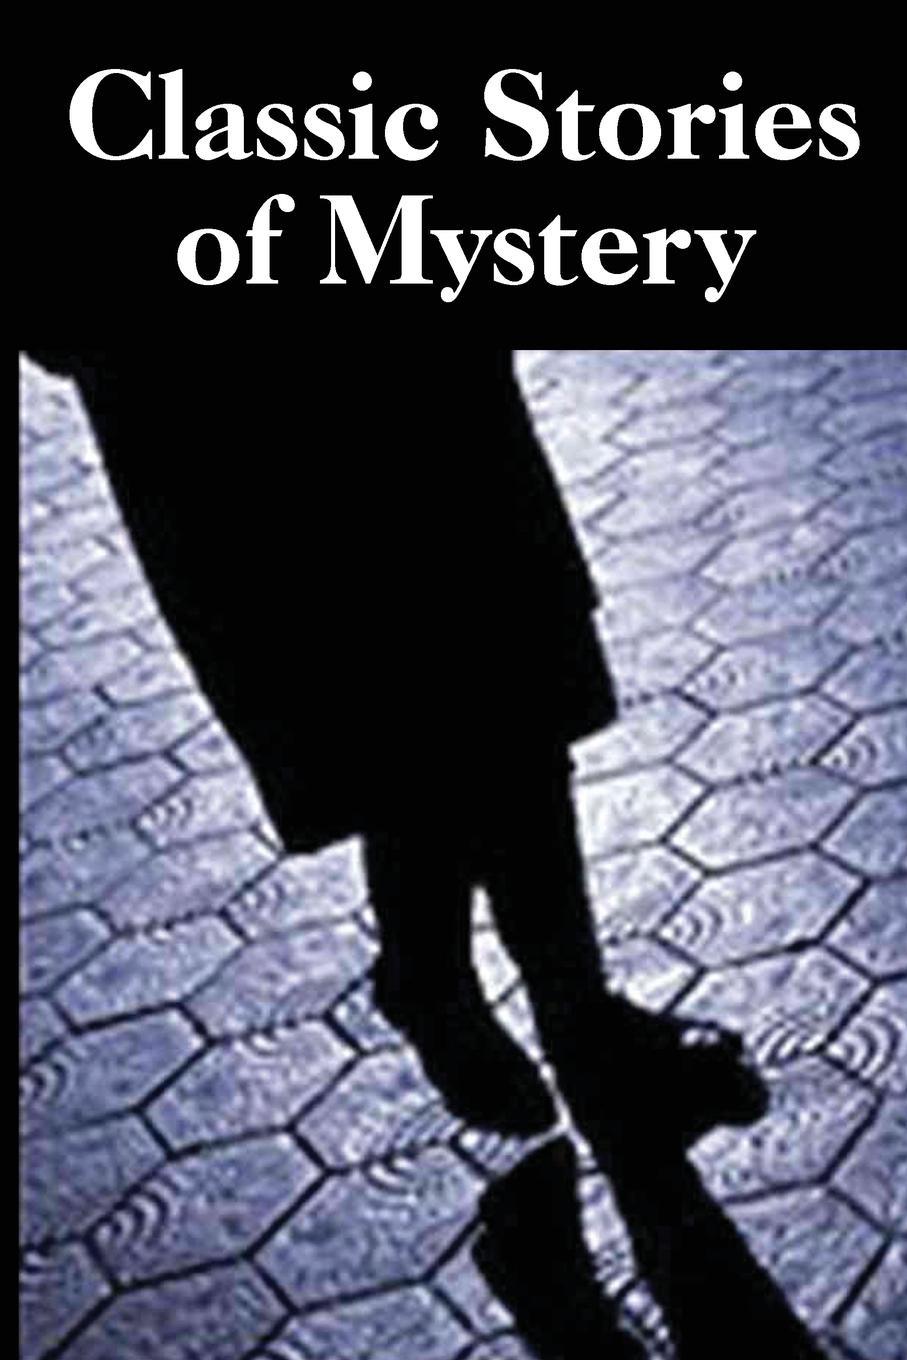 Classic Stories of Mystery dulmus catherine n the profession of social work guided by history led by evidence